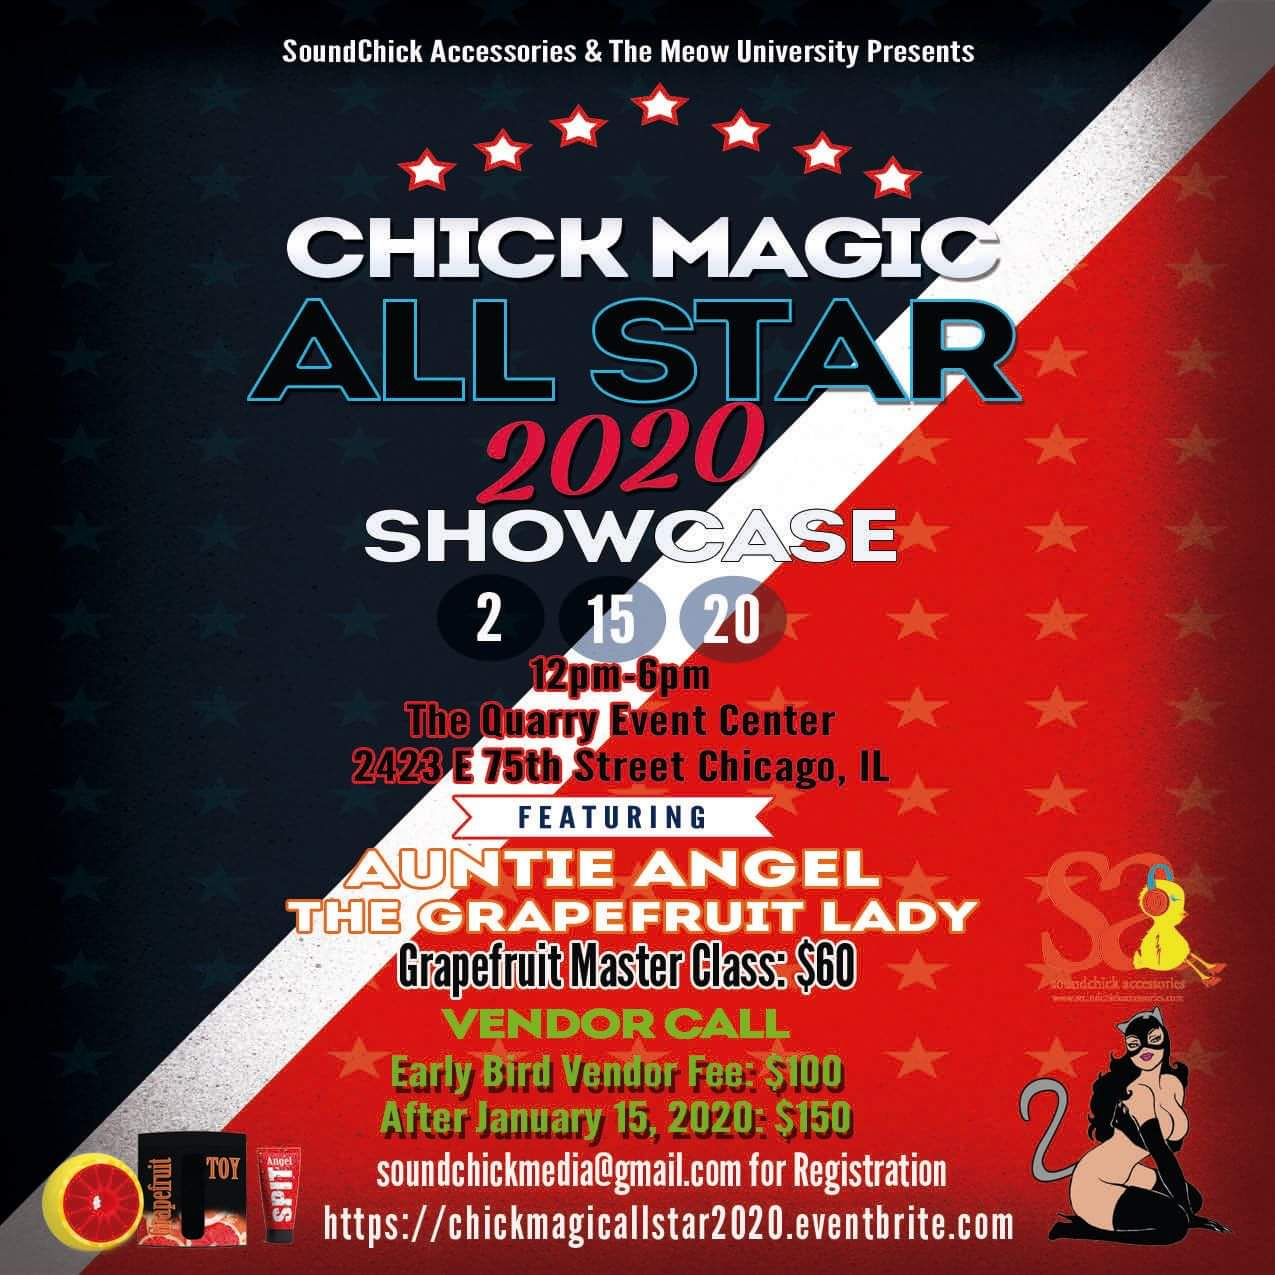 ChickMagic All-Star Weekend